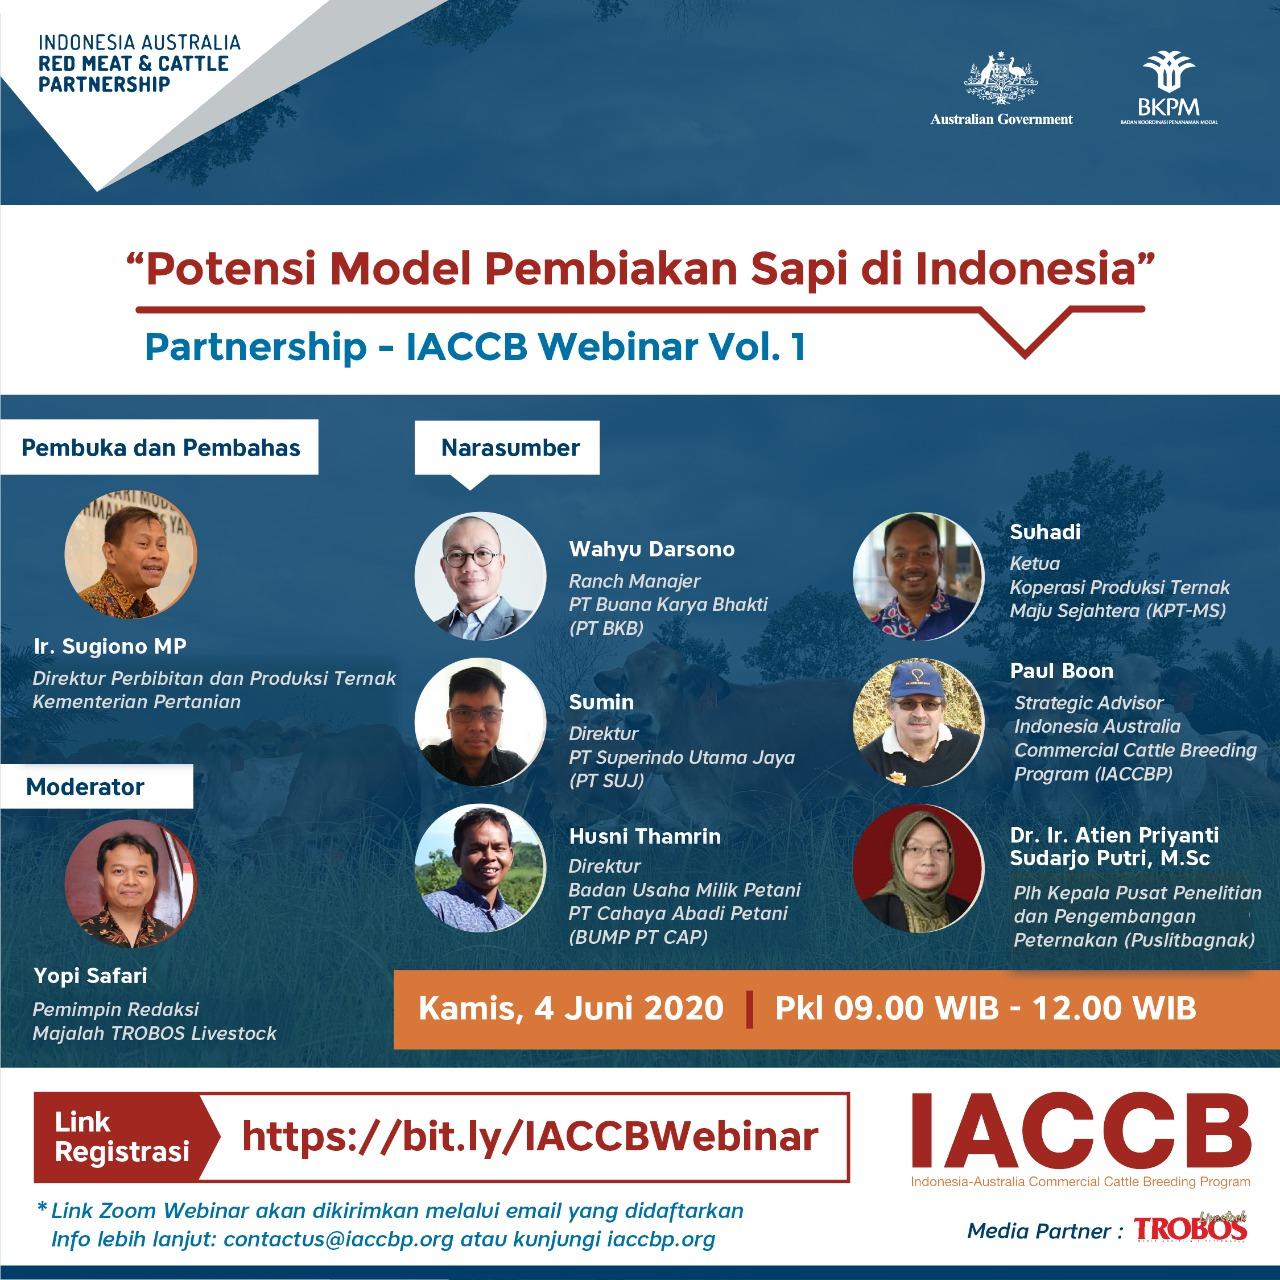 Partnership - IACCB Webinar Vol. 1